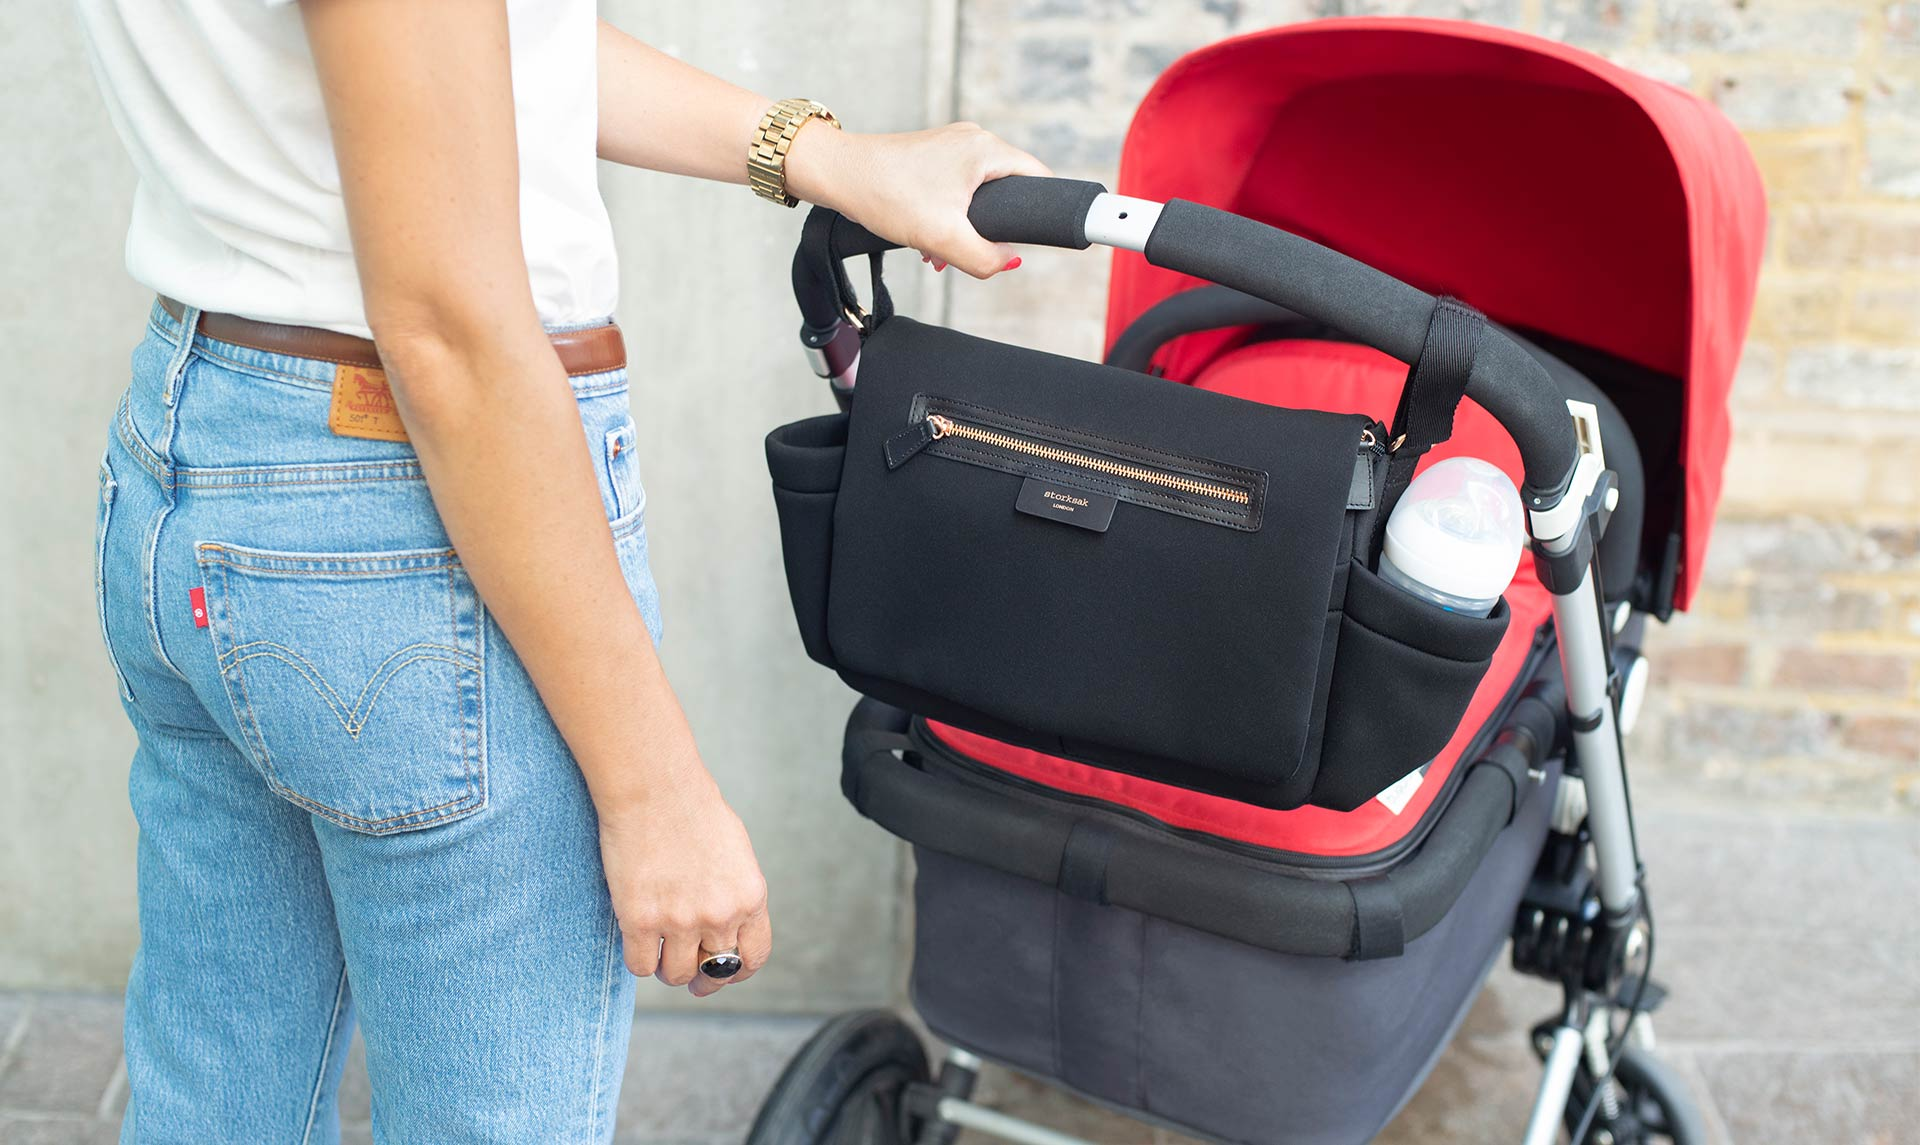 Stroller Organiser Luxe Black Scuba Baby accessories | Storksak Baby accessories | Storksak - Award-winning Baby Changing Bags & Accessories